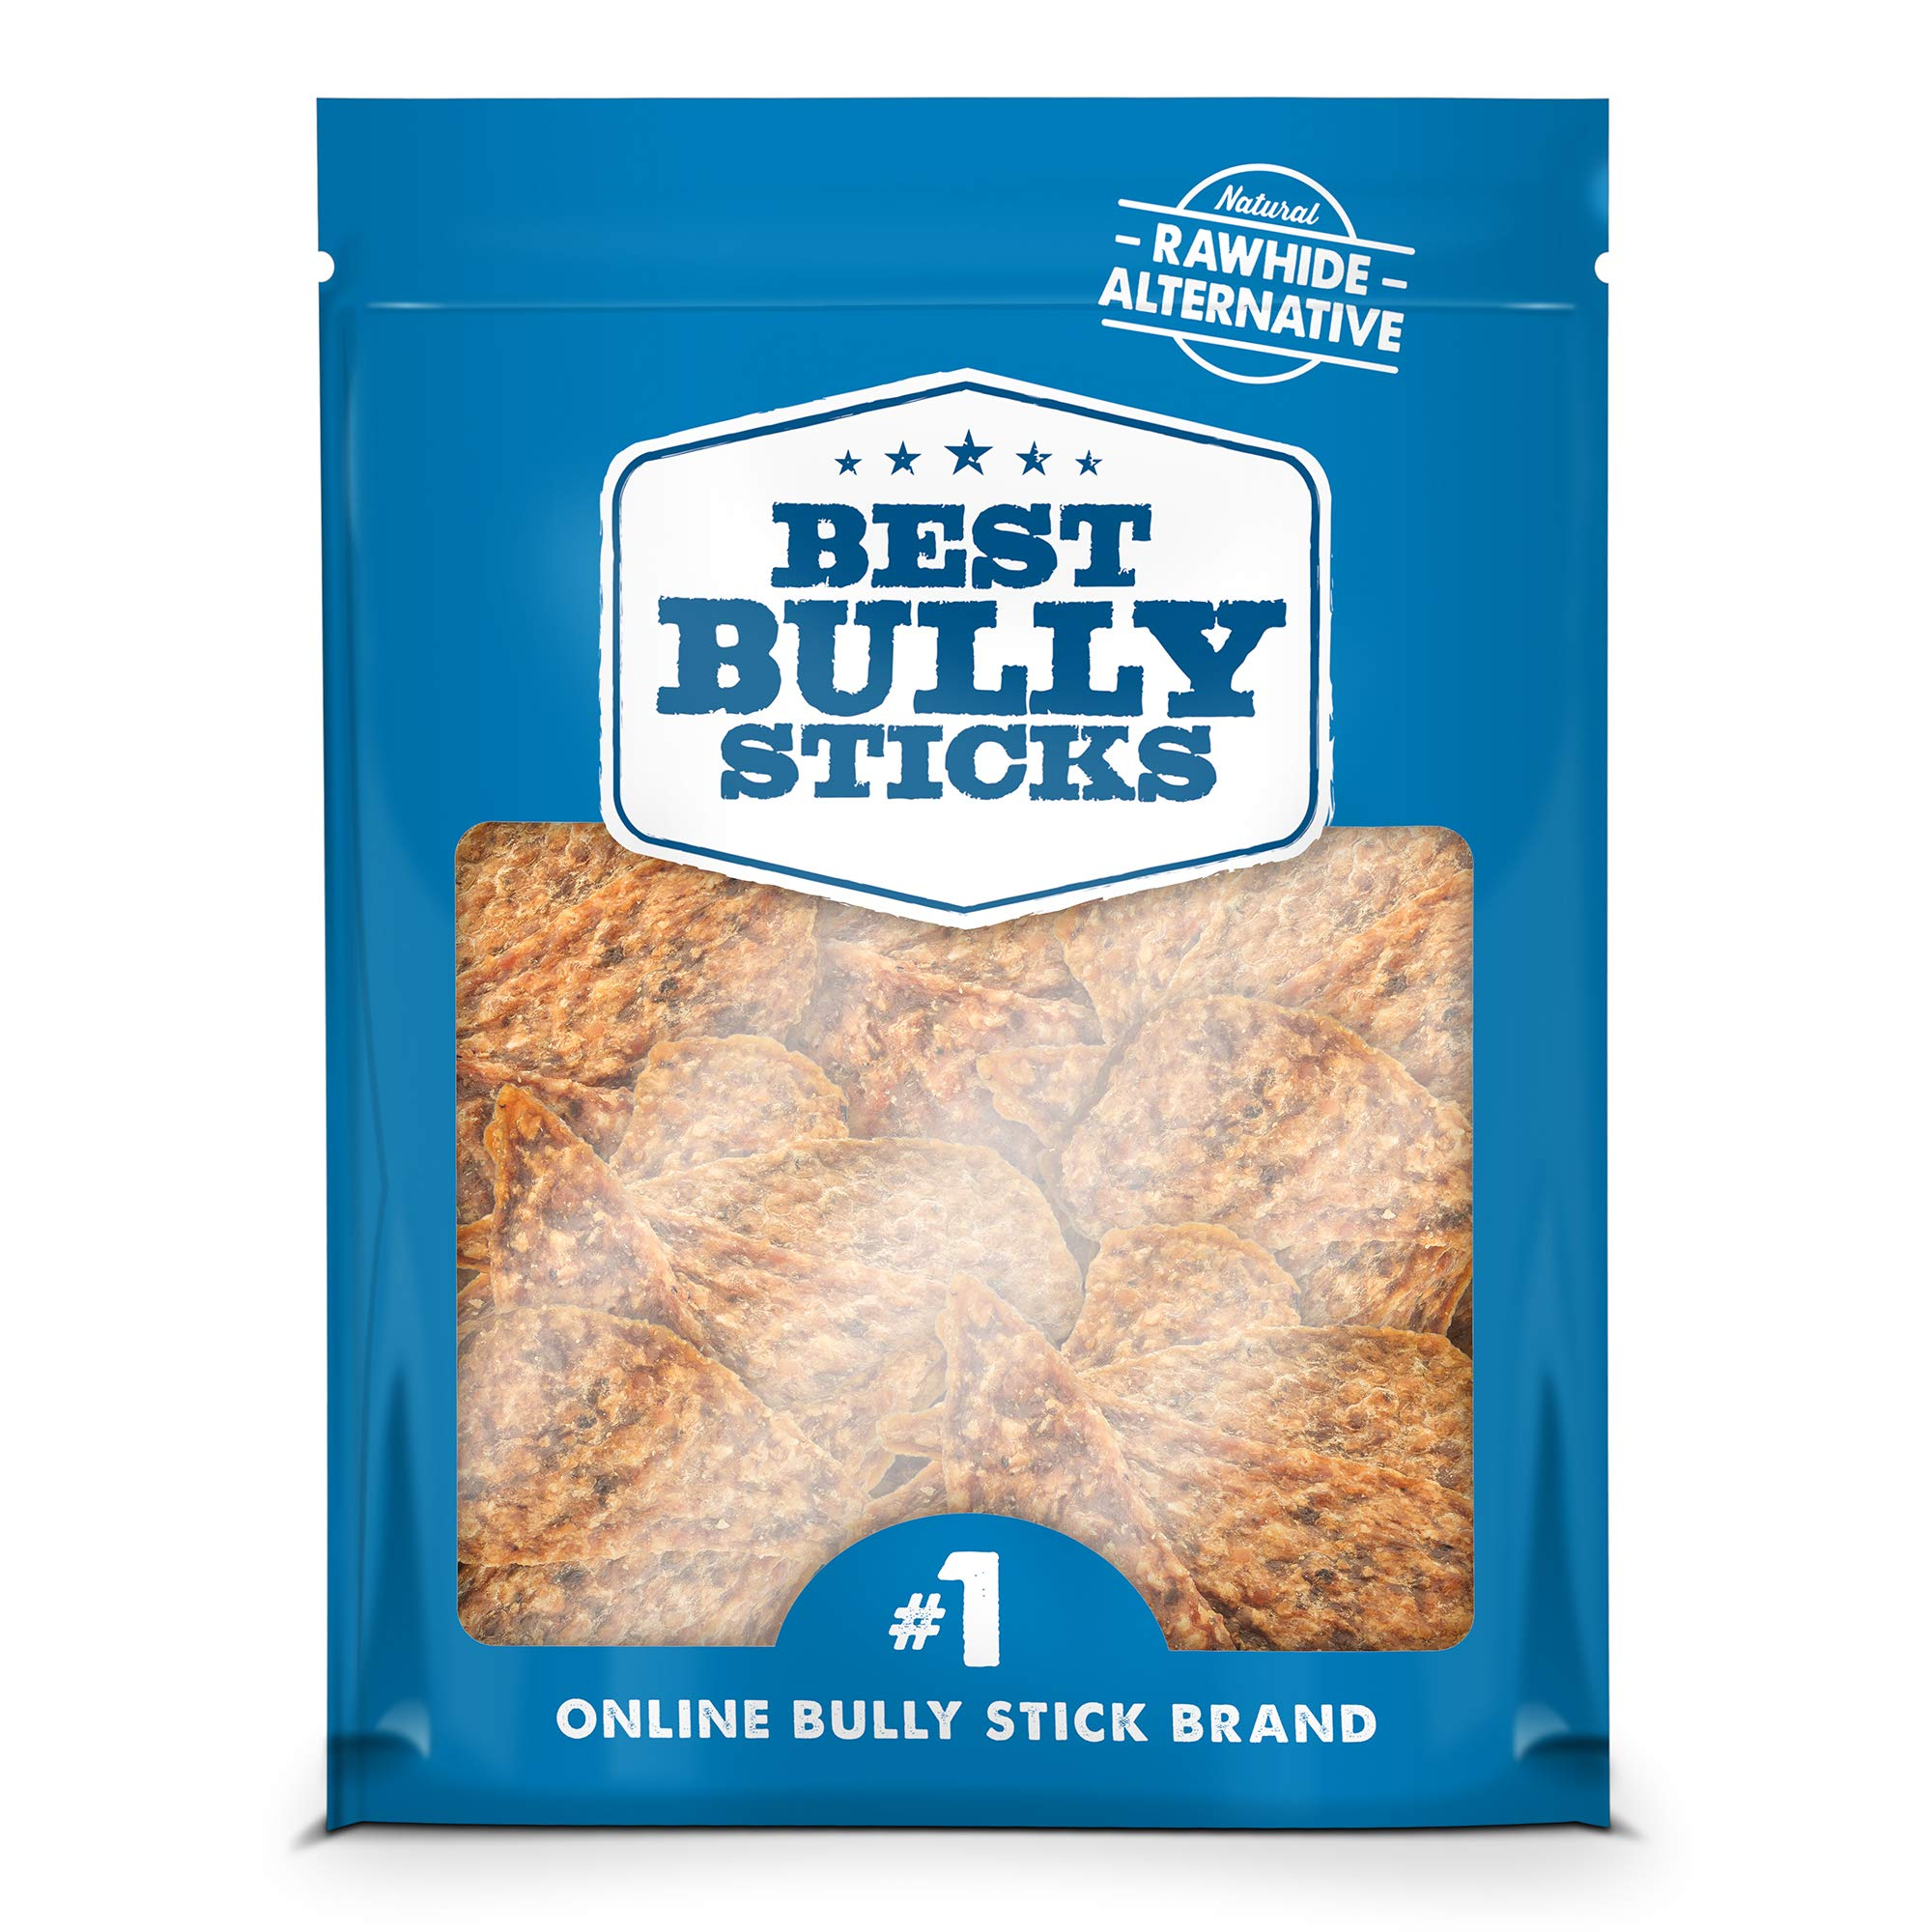 Best Bully Sticks Gourmet Duck Breast Dog Treats (3lb. Value Pack) - All-Natural Dog Chews - No Hormones, Additives, or Chemicals